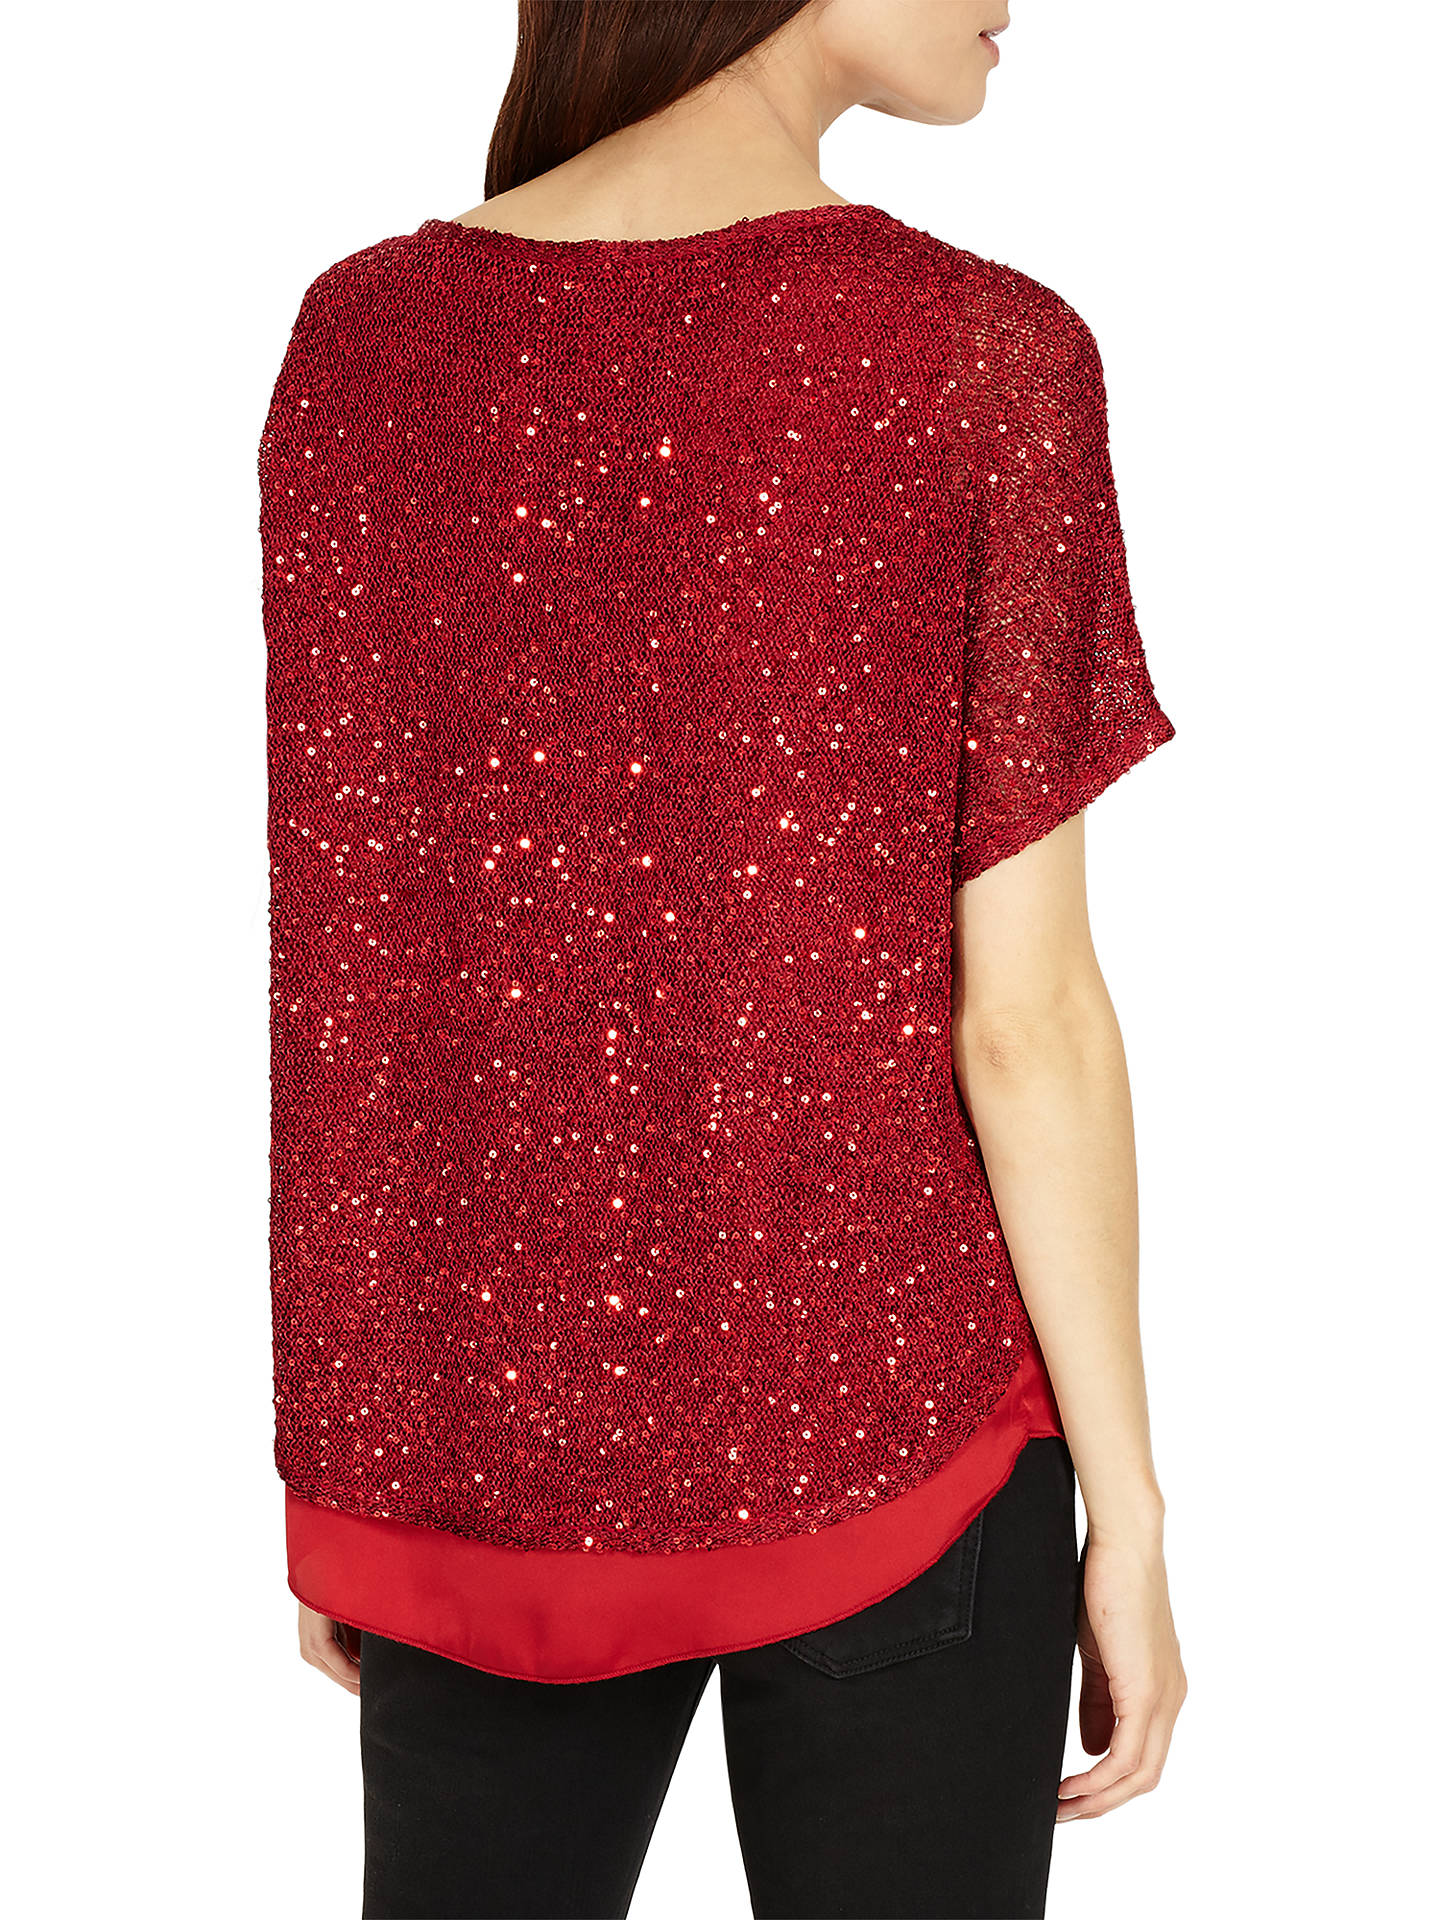 BuyPhase Eight Sequin Macey Knit Top, Ruby, XS Online at johnlewis.com